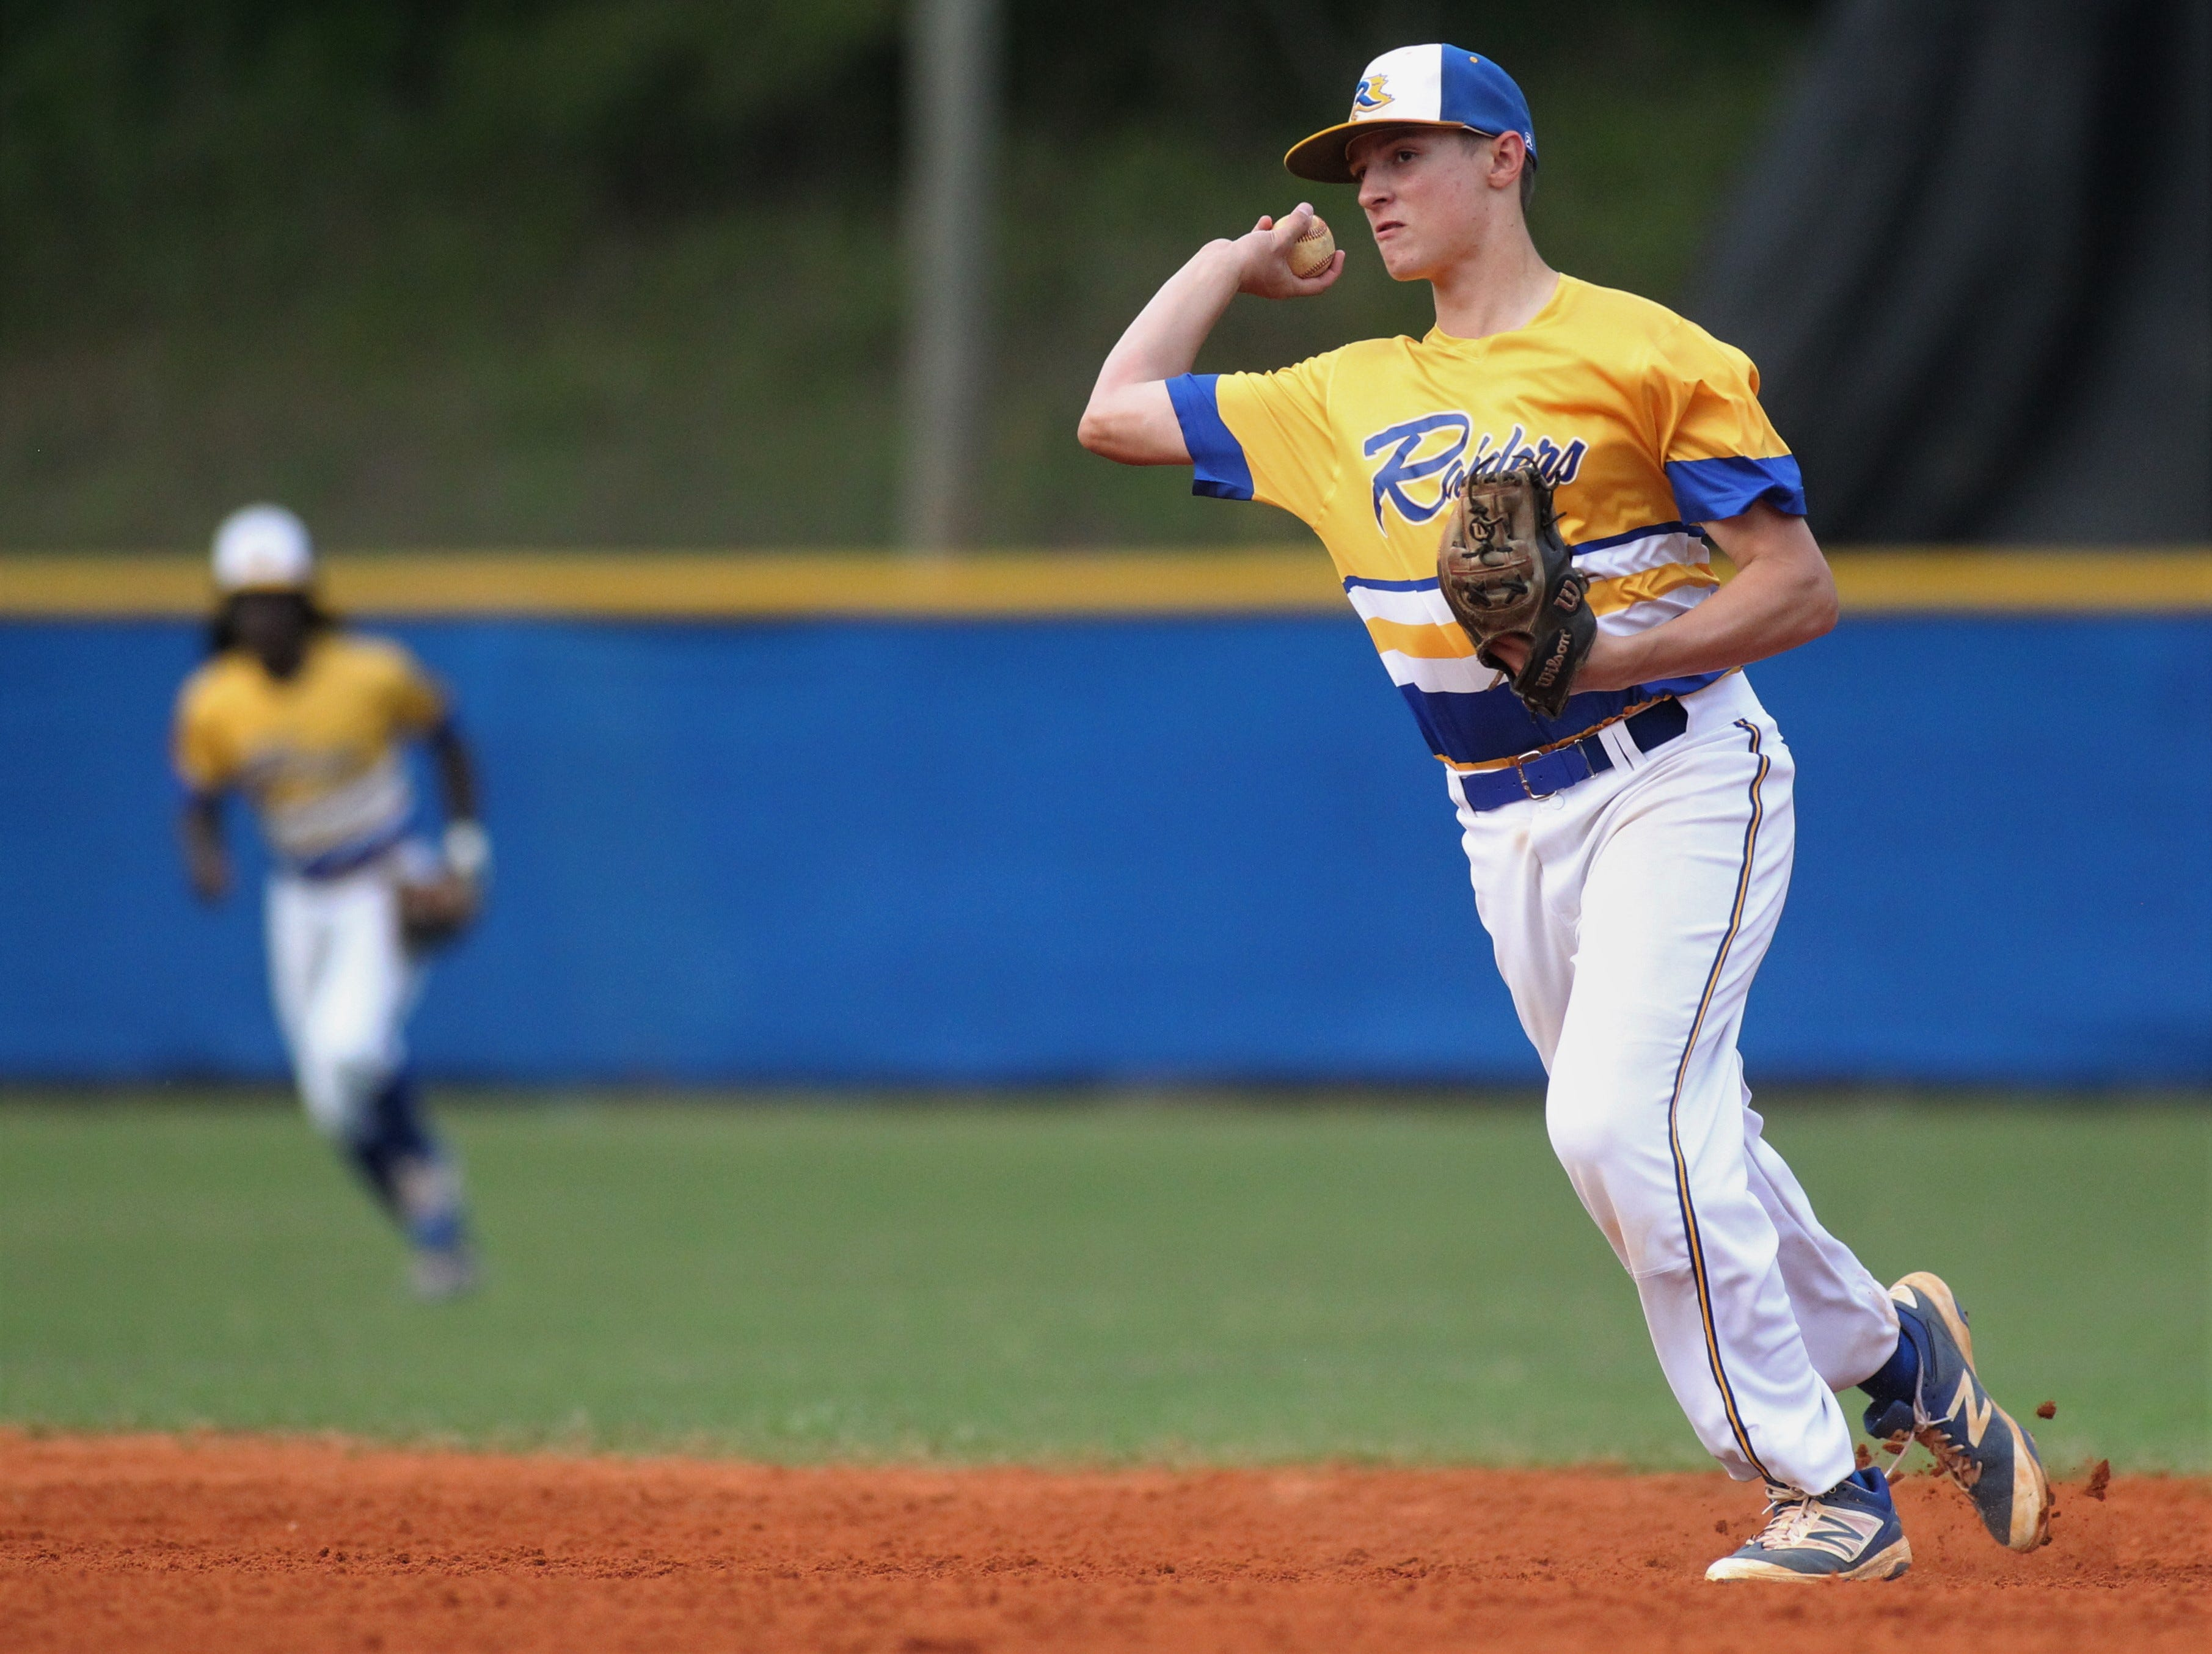 Rickards second baseman Nevan Figueroa throws to first for an out as Rickards beat Gadsden County 18-0 in three innings on Friday, April 12, 2019.